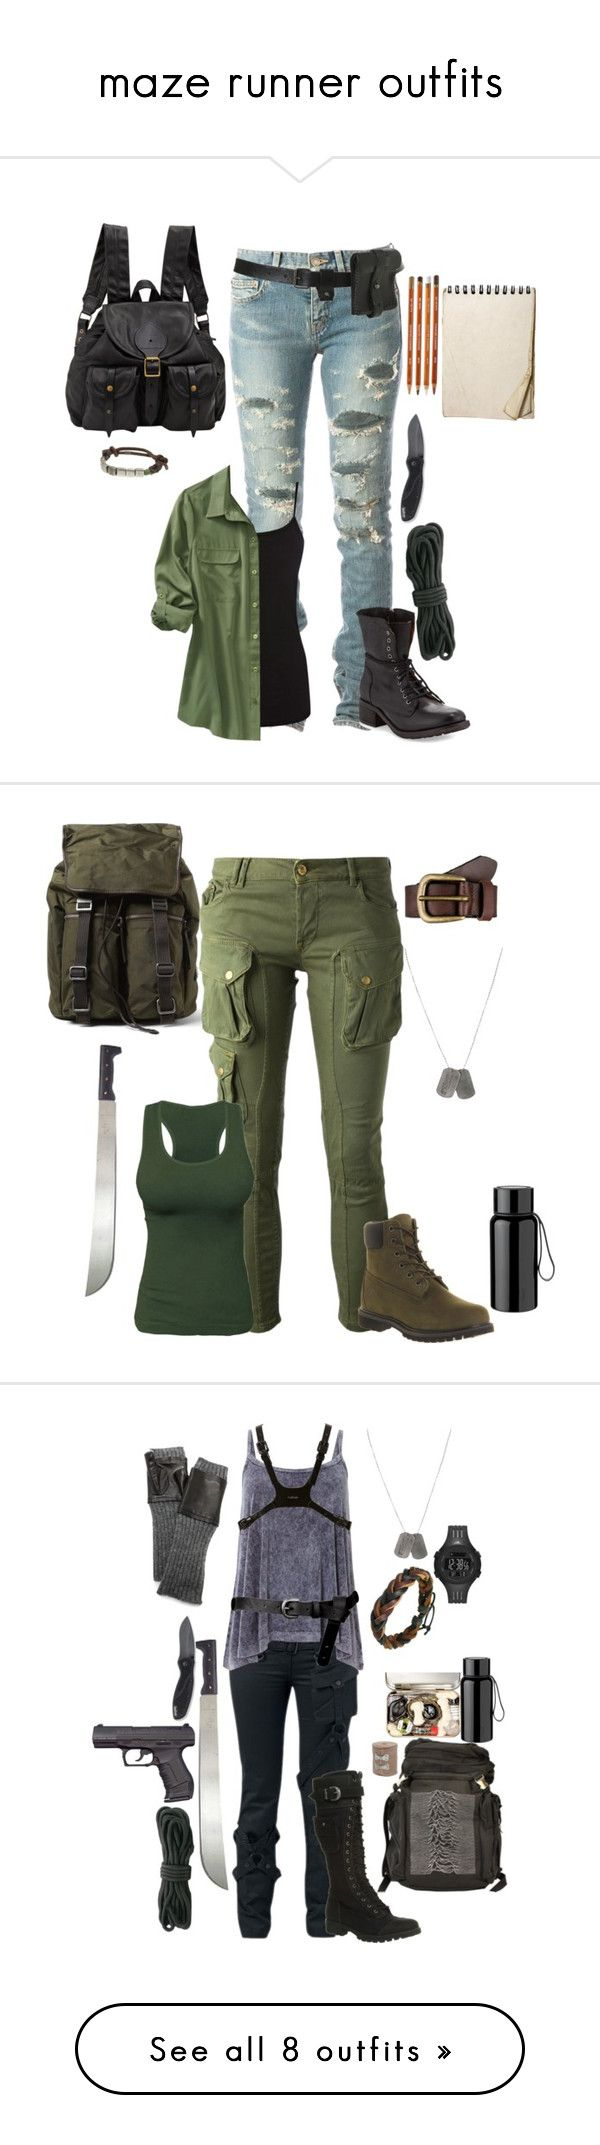 """maze runner outfits"" by gone-girl ❤ liked on Polyvore featuring Yves Saint Laurent, Warehouse, Old Navy, Kershaw, Jas M.B., American Eagle Outfitters, Modern Vintage, Dolce&Gabbana, CYCLE and Liebeskind"